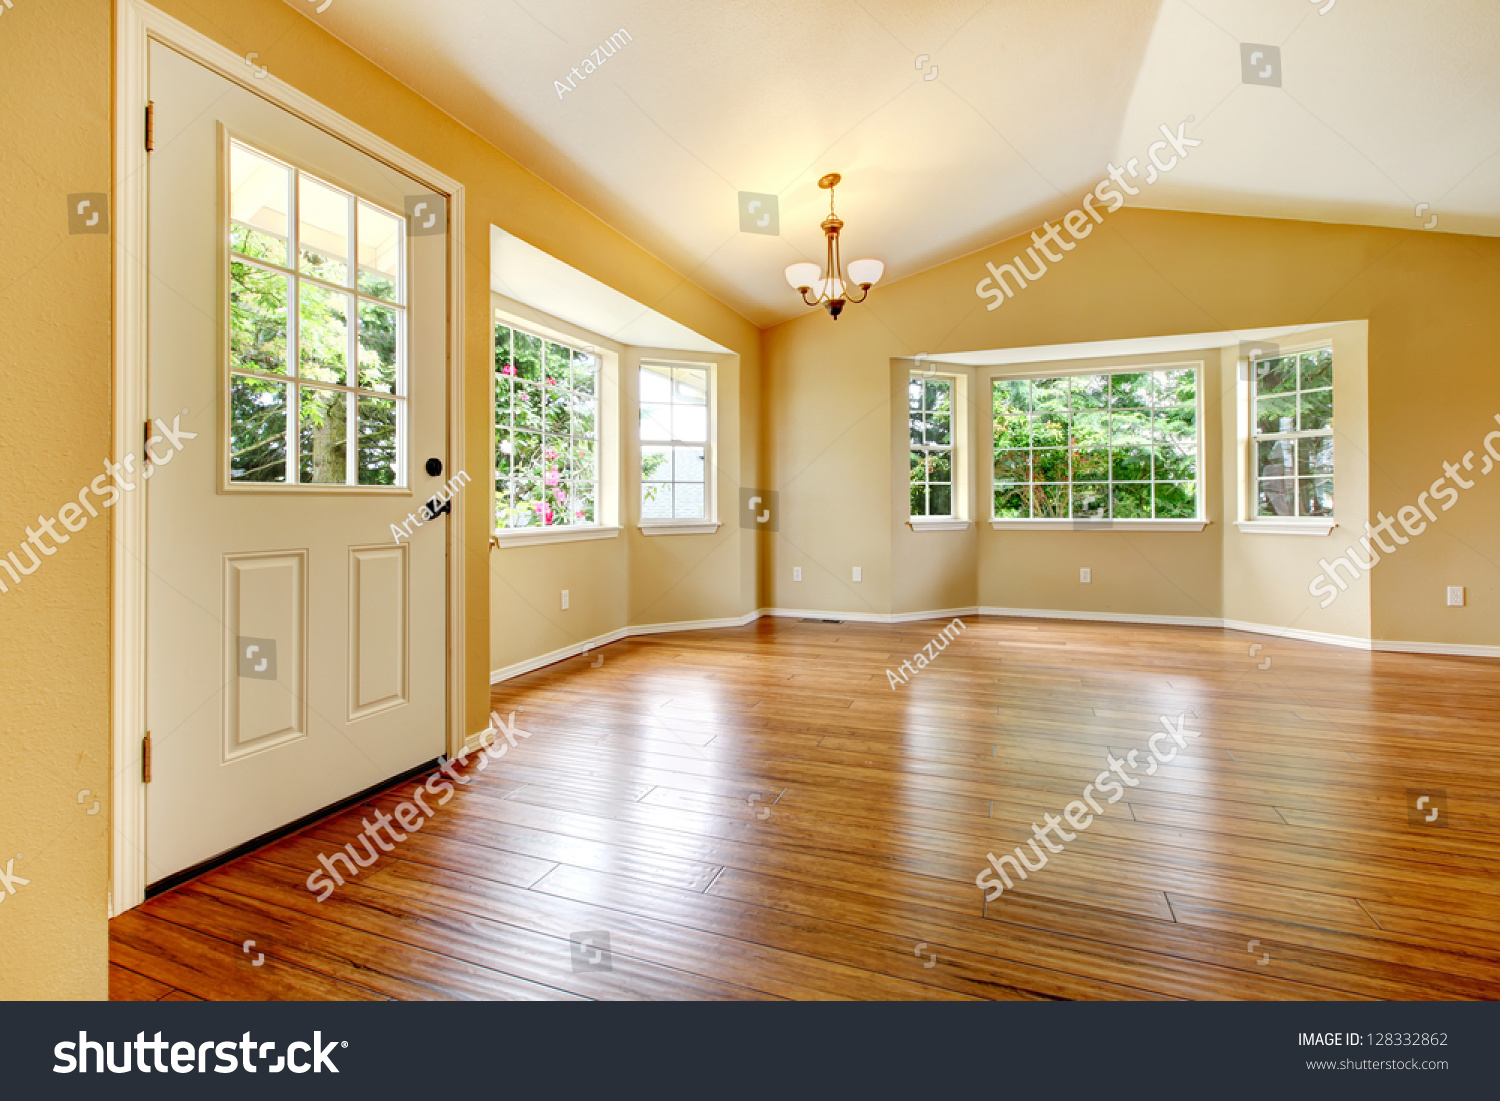 Newly Remodeled Living Room With Wood Floor Preview Save To A Lightbox